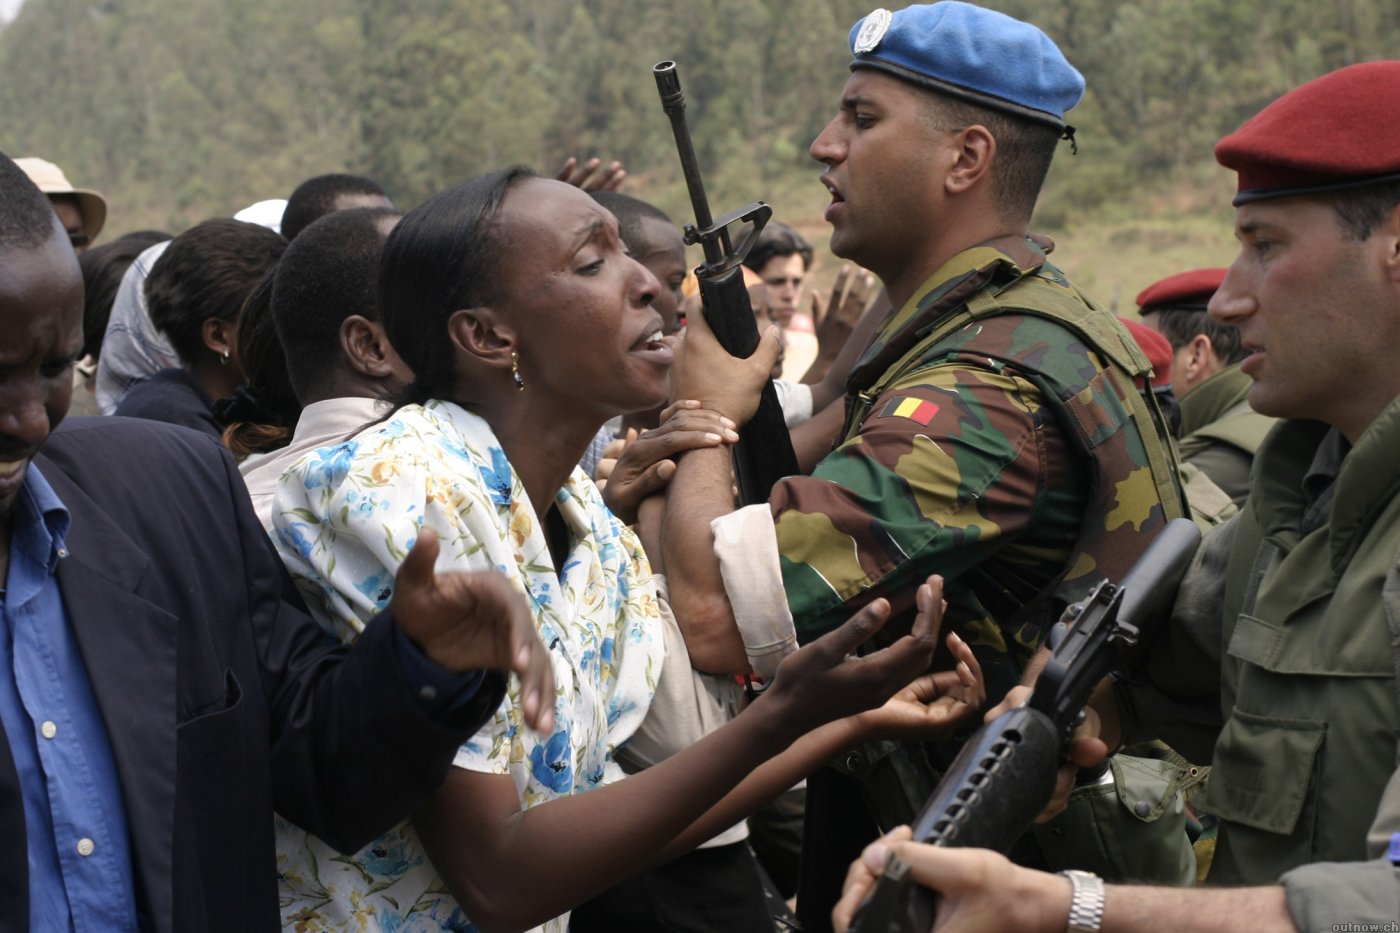 rwandan genocide tutsis versus hutus Although a series of brutal conflicts have been waged between hutus and tutsis, including the genocidal war in rwanda, distinctions between the two groups are less than clear.